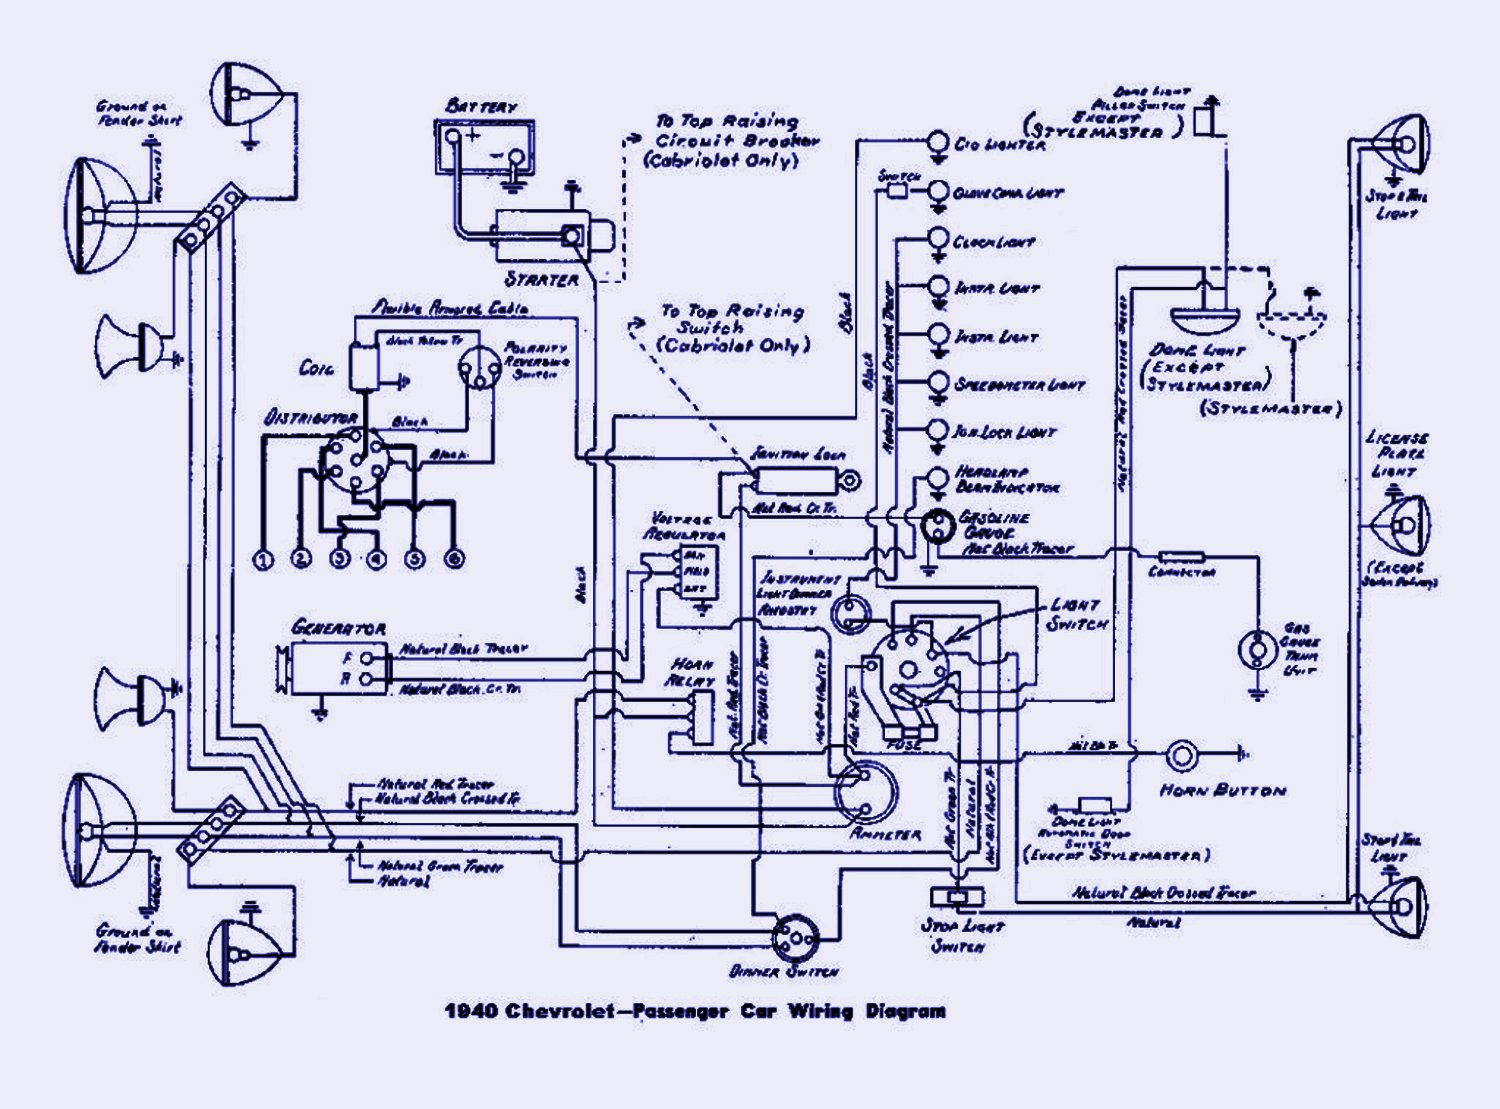 DIAGRAM] 2000 Chevrolet Wiring Diagram FULL Version HD Quality Wiring  Diagram - RELAYWIRING.AMINESORCIER.FRrelaywiring.aminesorcier.fr